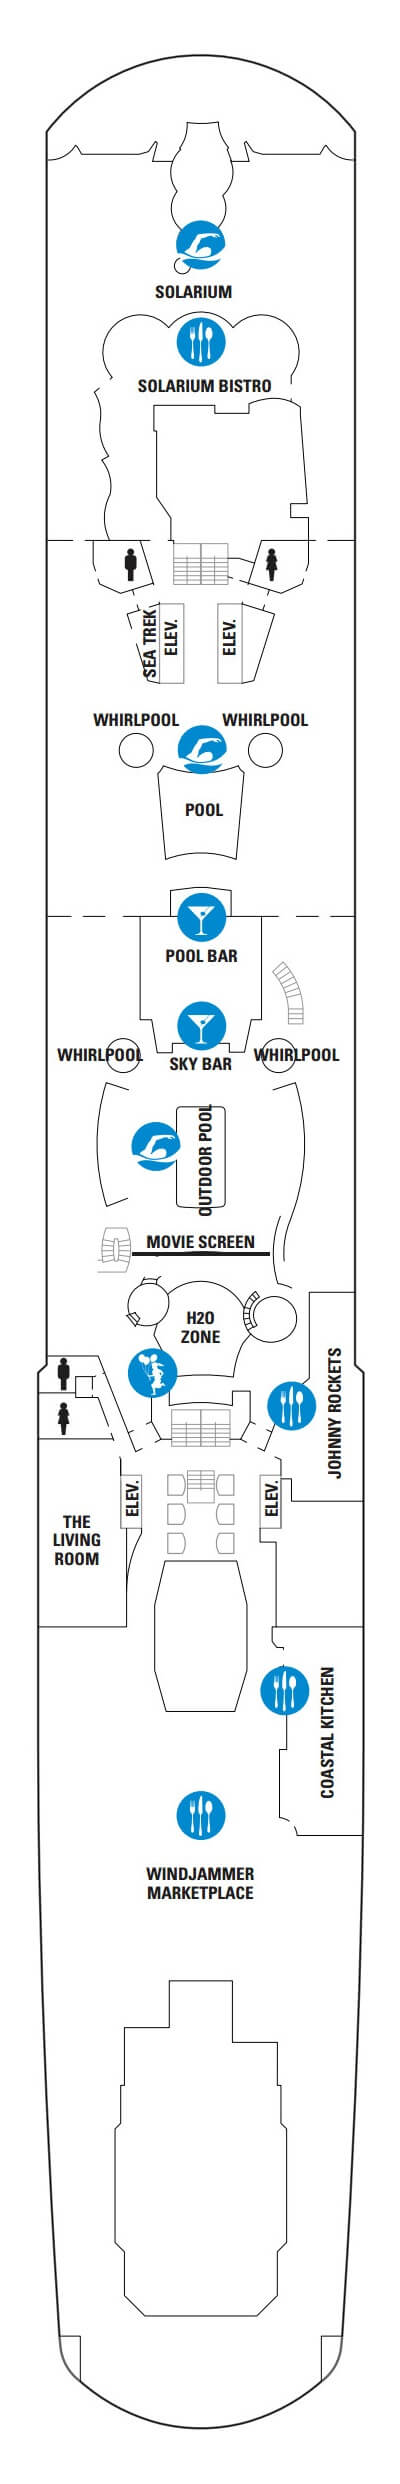 Anthem Of The Seas Deck 14 layout